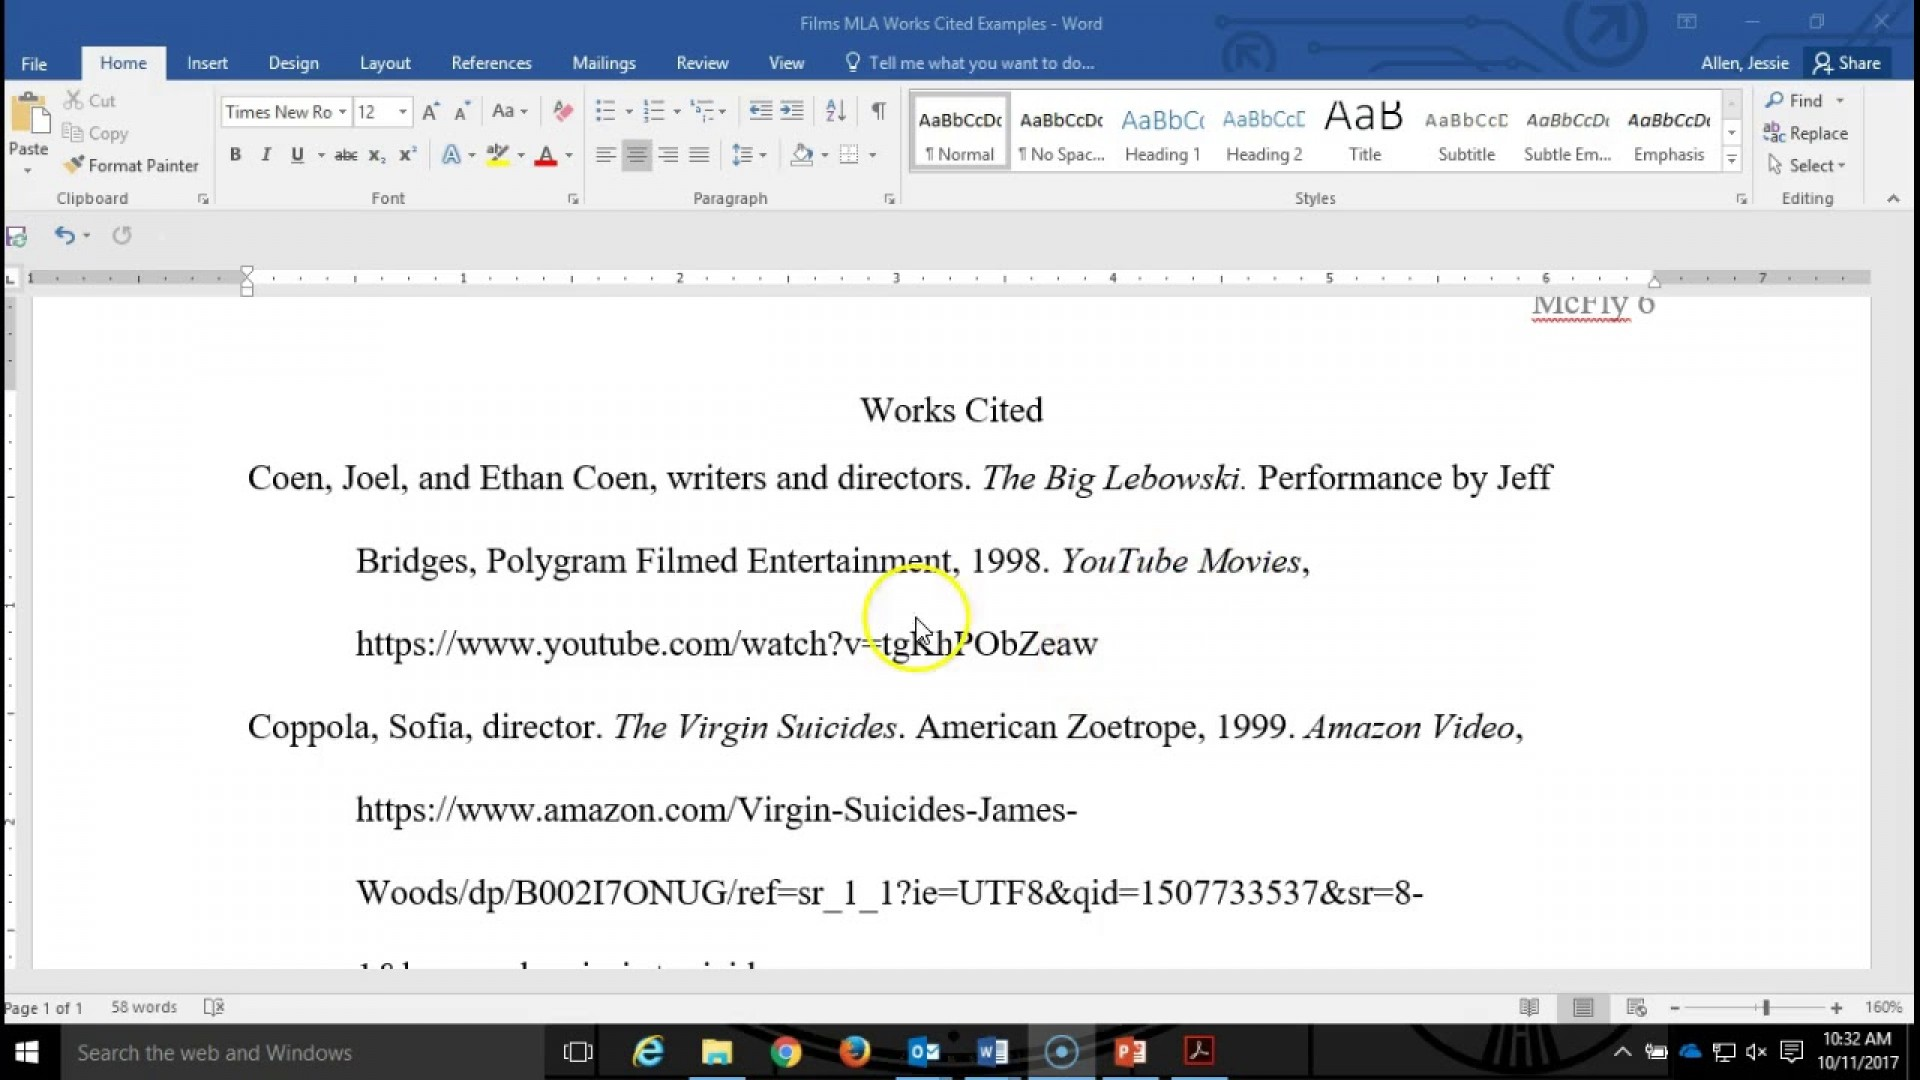 005 Research Paper Citations For Mla Astounding Citing A Website In Format 1920